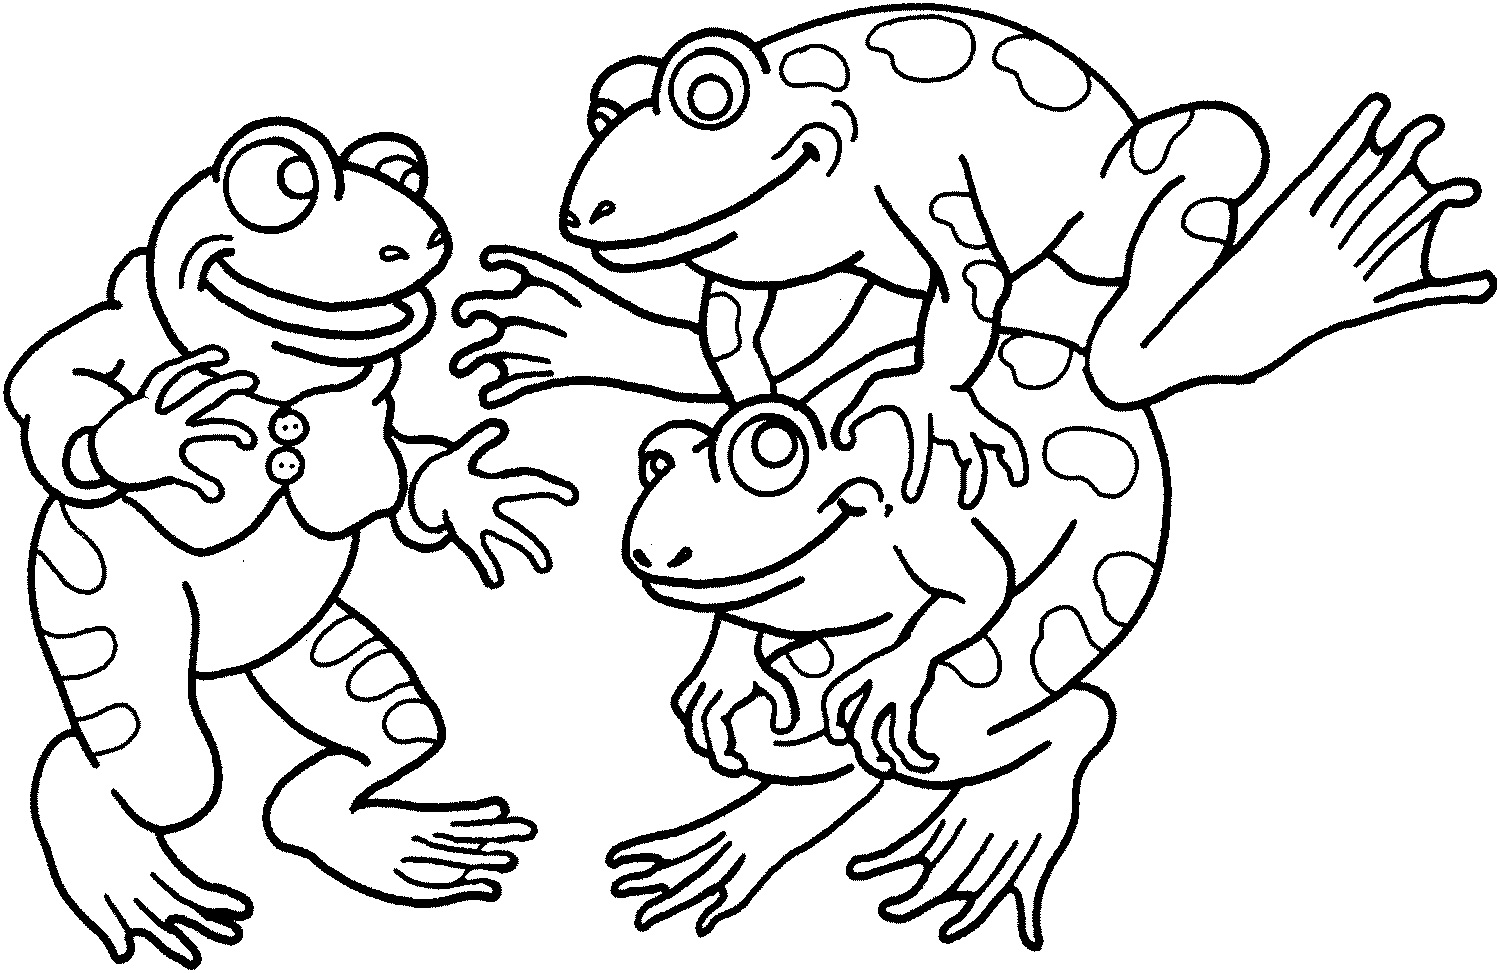 Realistic Frog Coloring Pages At Getdrawings